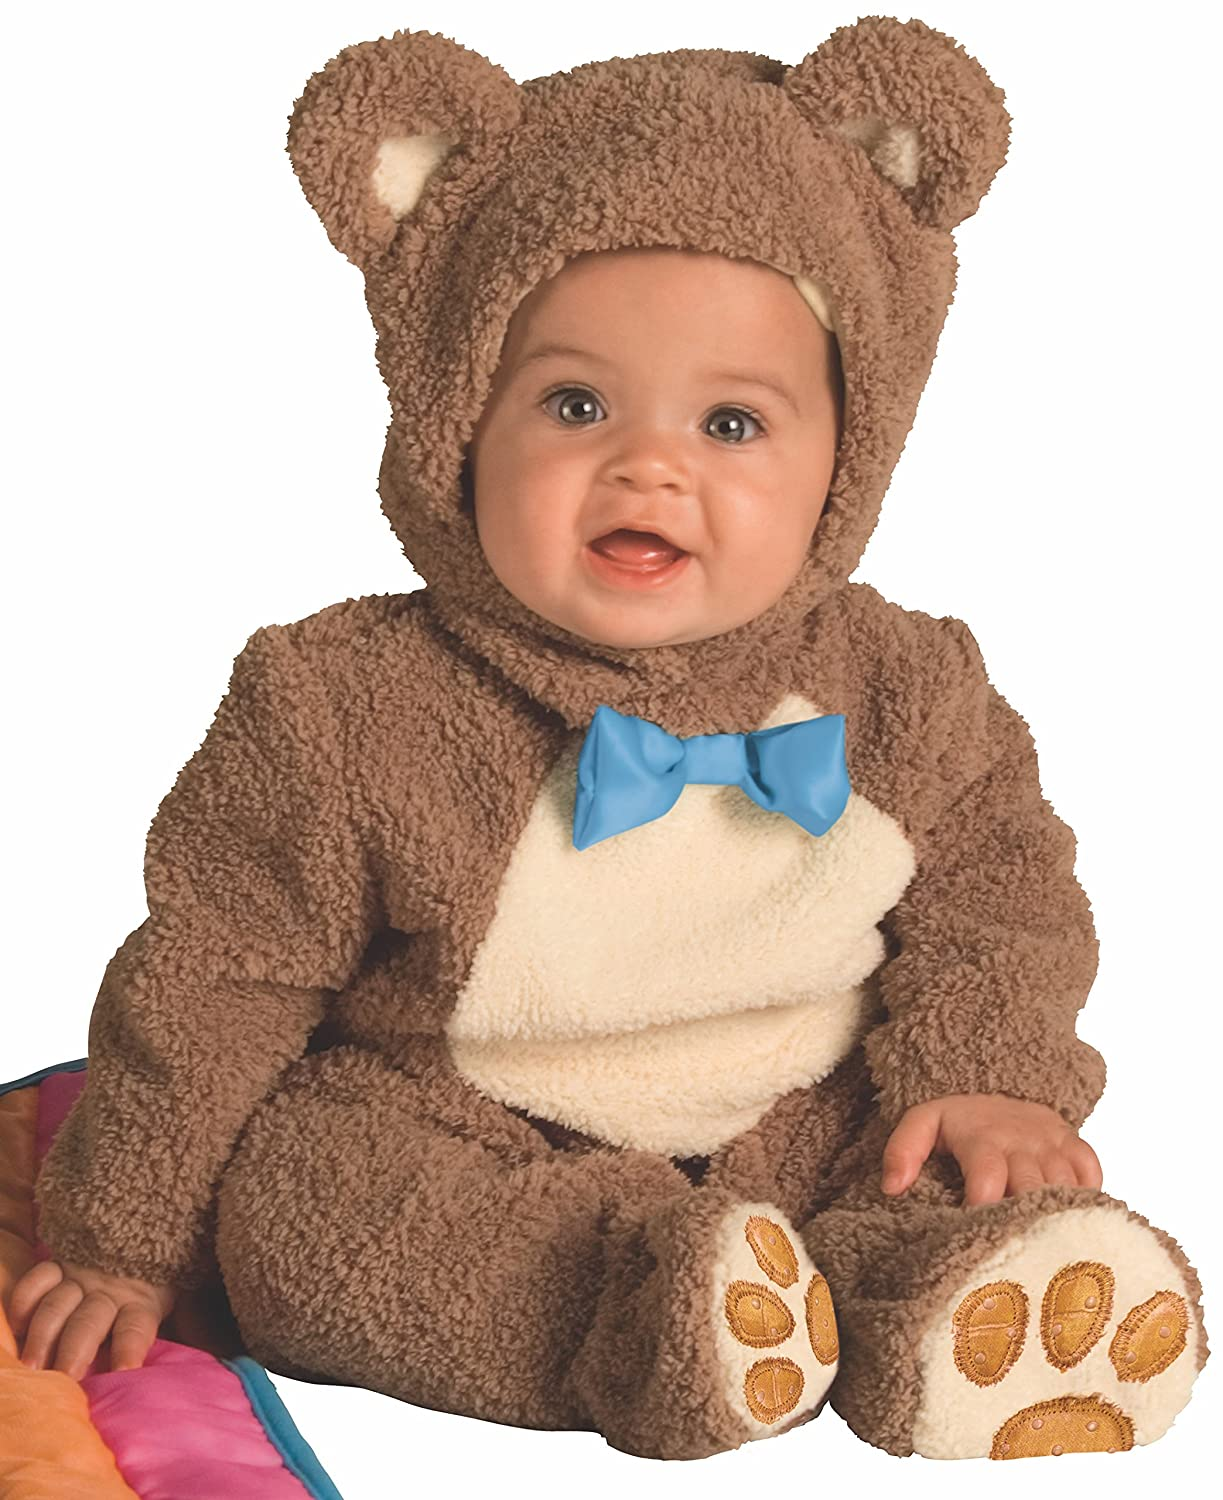 Rubie's Costume Infant Noah Ark Collection Oatmeal Bear Jumpsuit Costume Rubies Costumes - Apparel